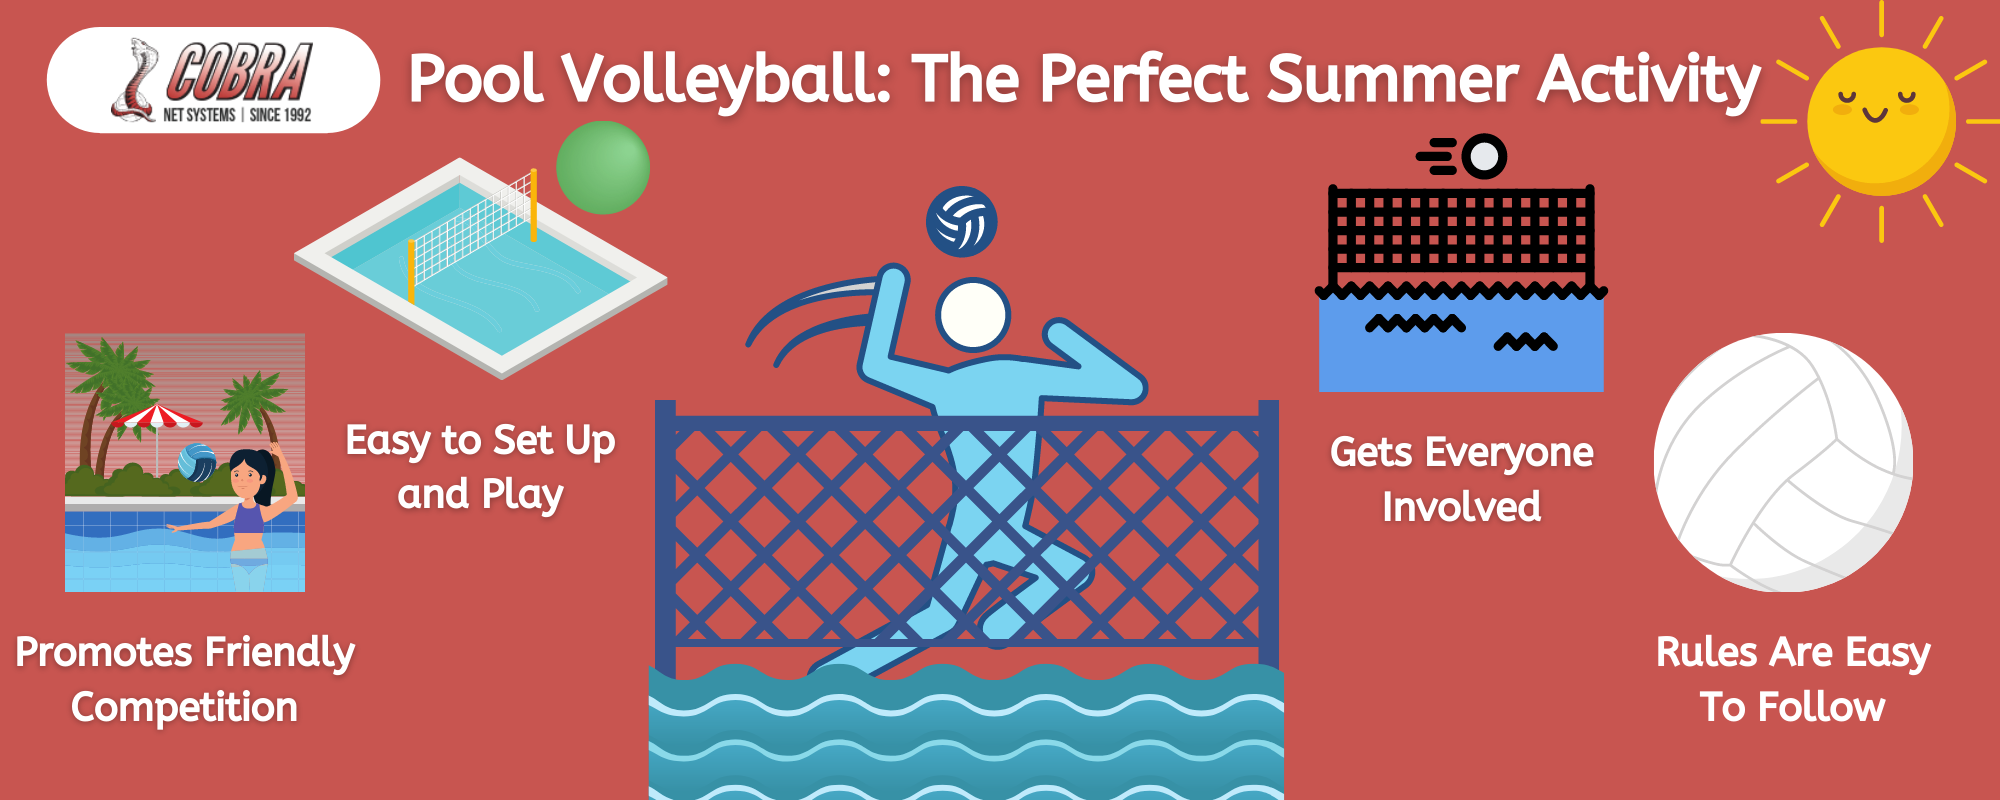 Infographic detailing why pool volleyball is the perfect summer activity